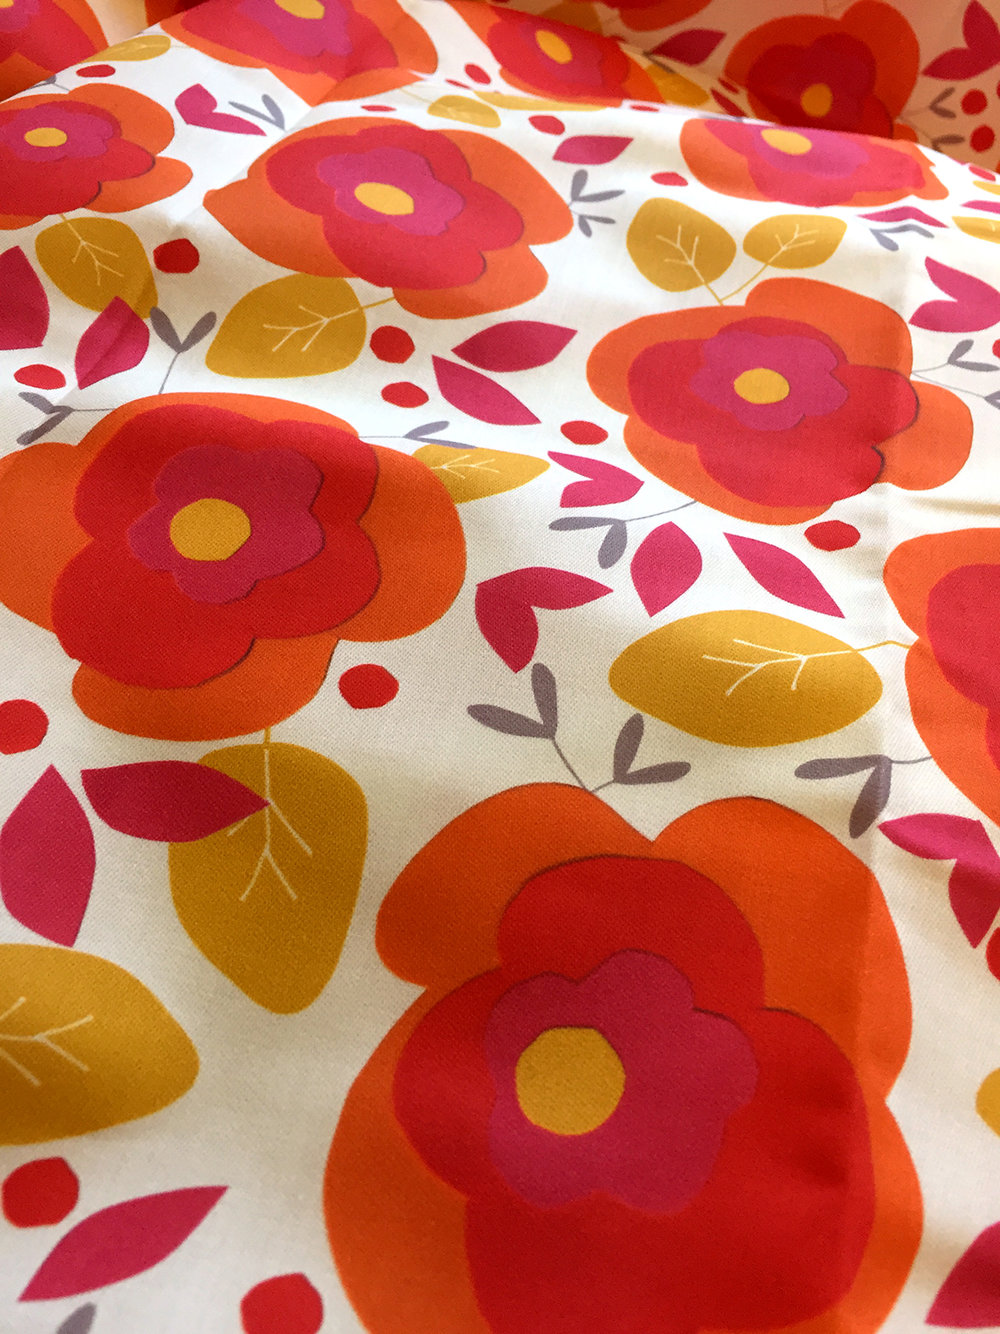 Collage_flower_Orange-red_Poplin.jpg